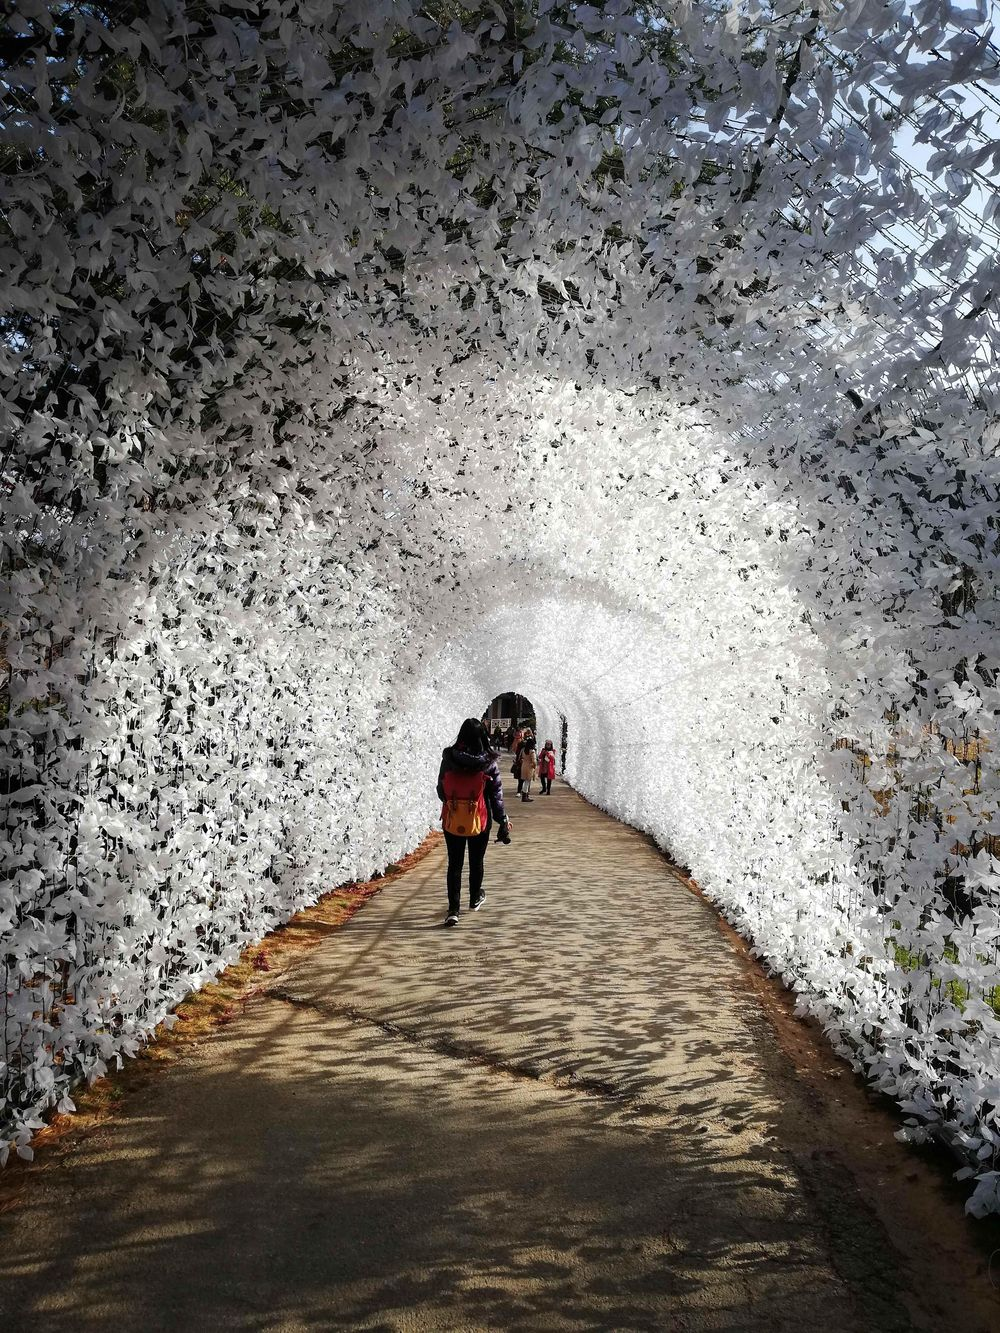 Random places in Seoul, South Korea - image 1 - student project